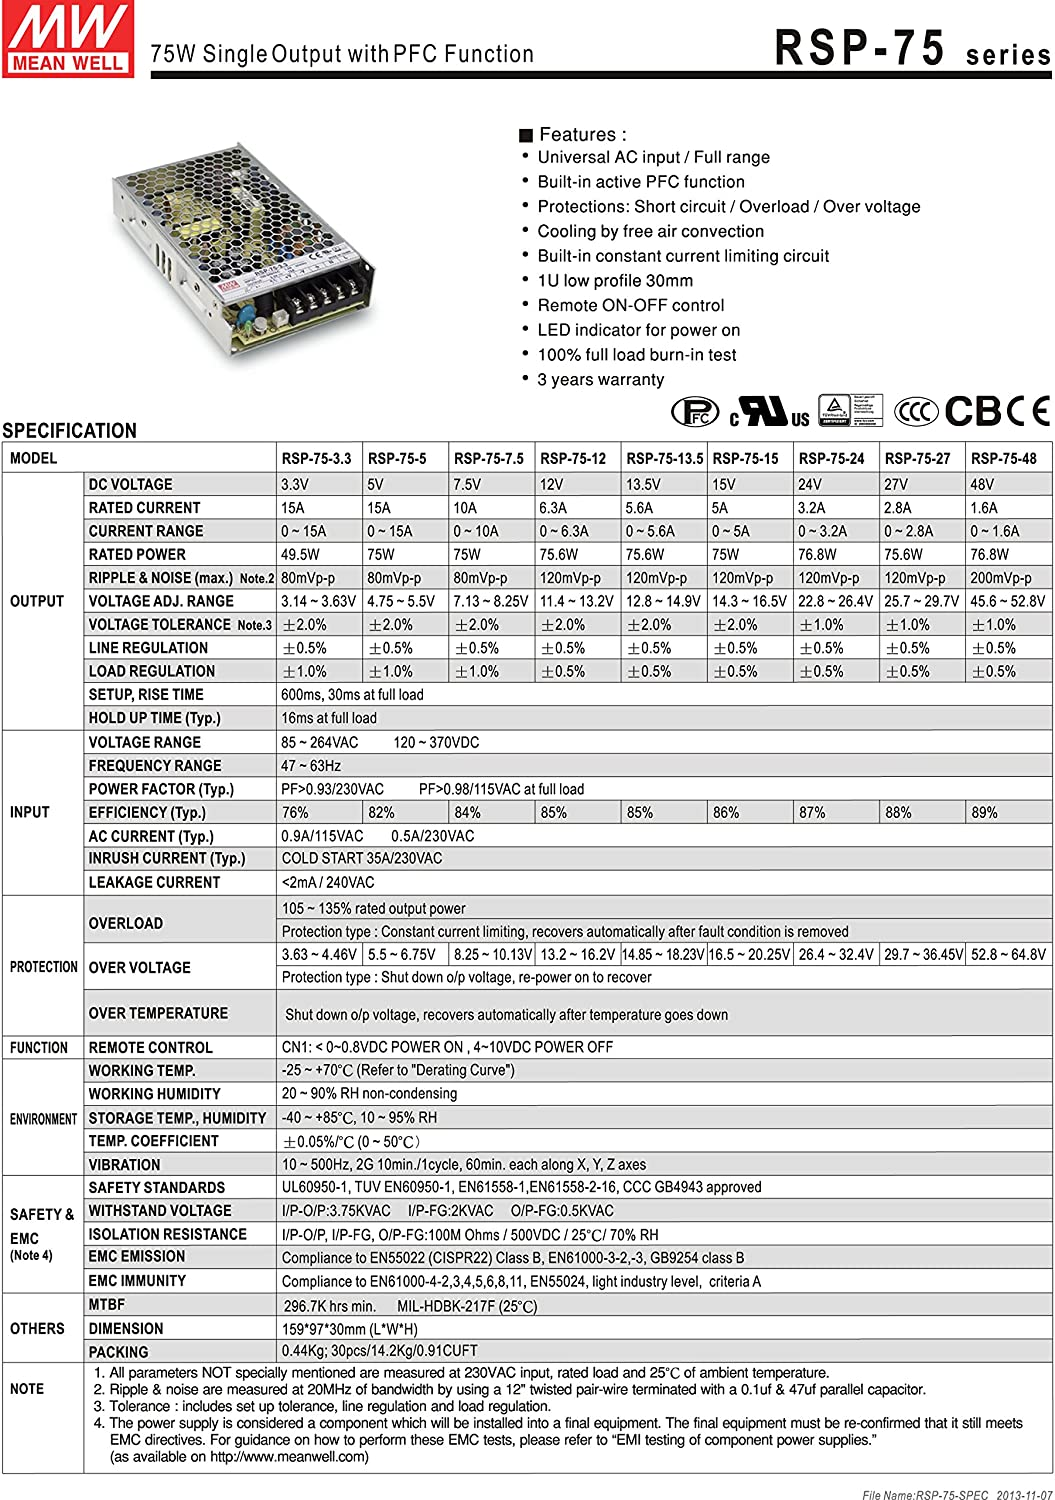 MW Mean Well RSP-75-48 48V 1.6A 76W Single Output with PFC Function Power Supply